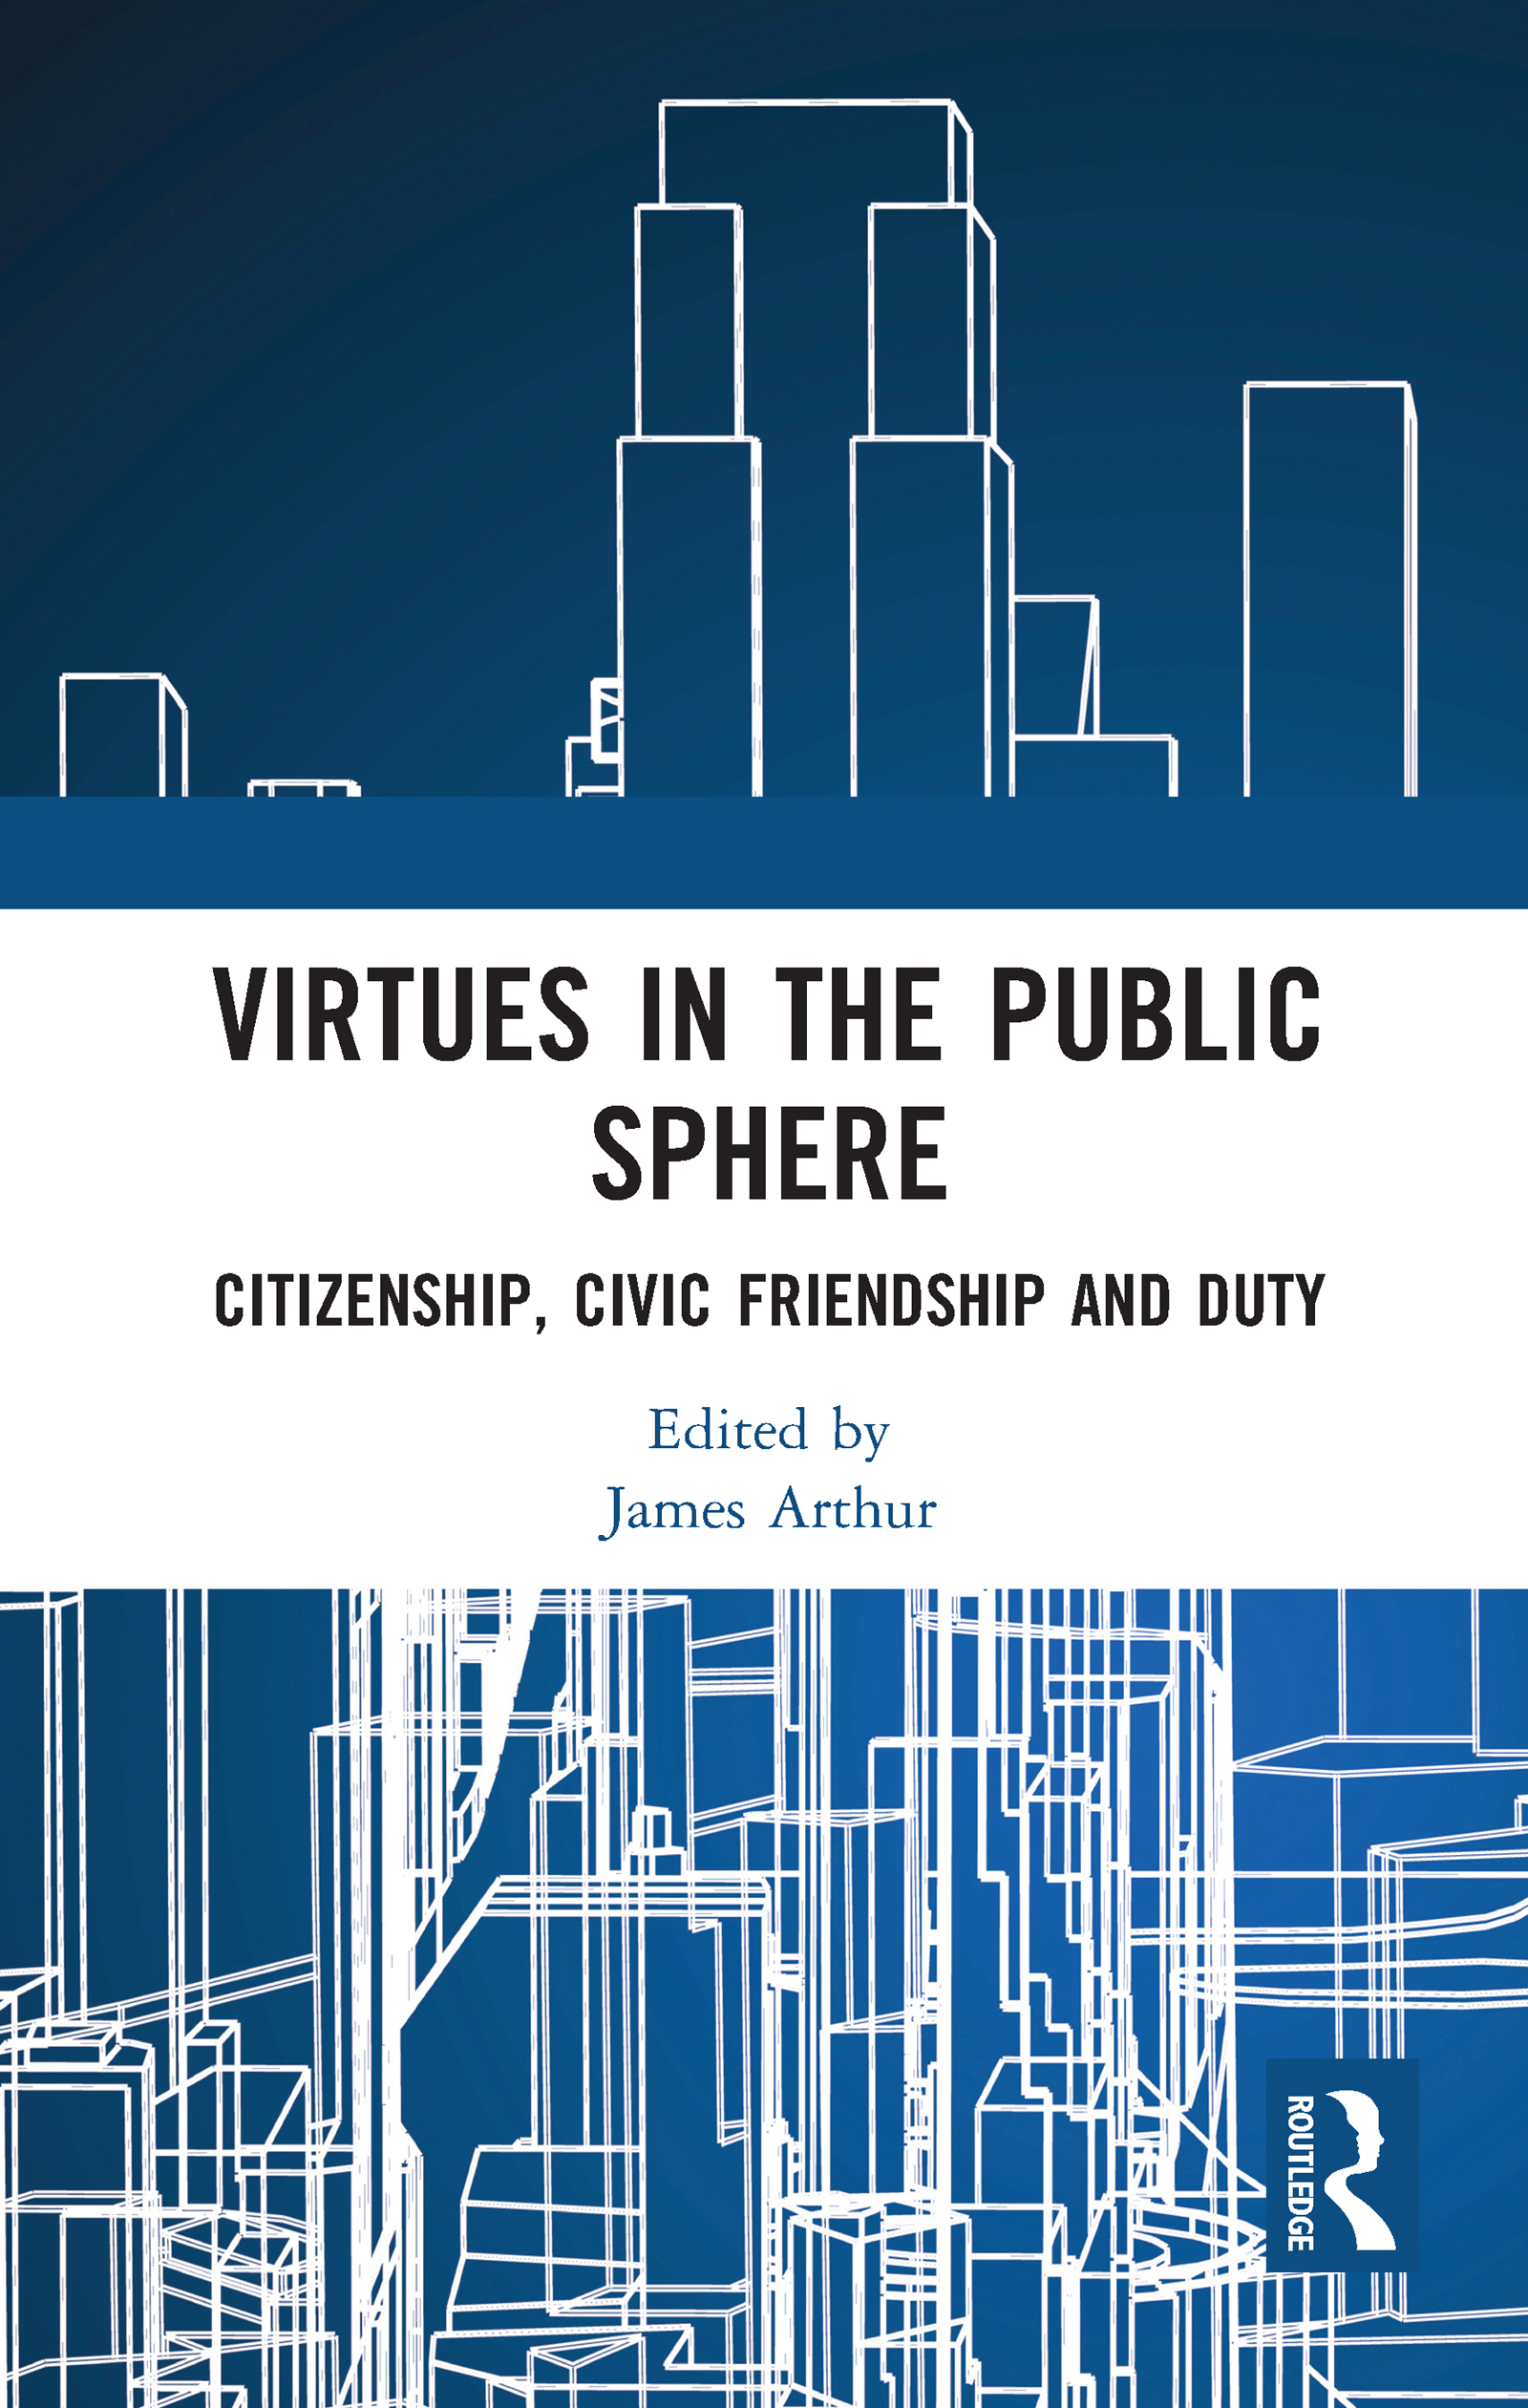 Virtues in the Public Sphere